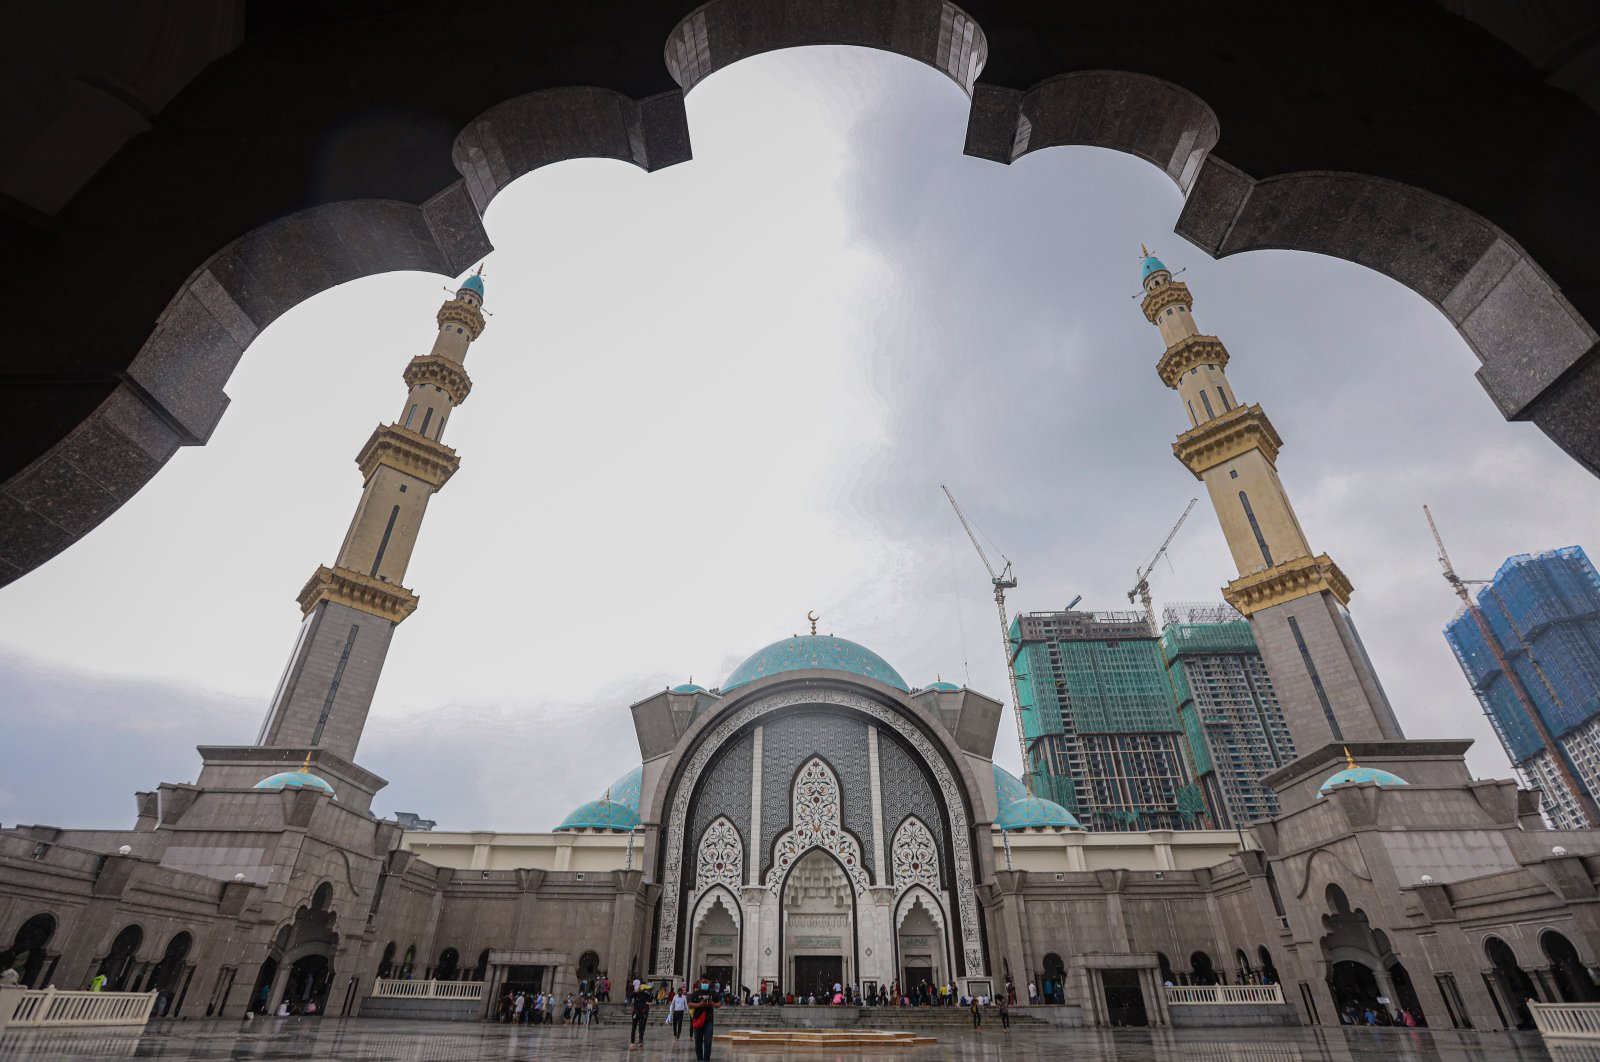 Worshippers leave Wilayah Mosque after their prayers on the first Friday of the holy month of Ramadan, Kuala Lumpur, Malaysia, April 16, 2021. (Photo by Getty Images)